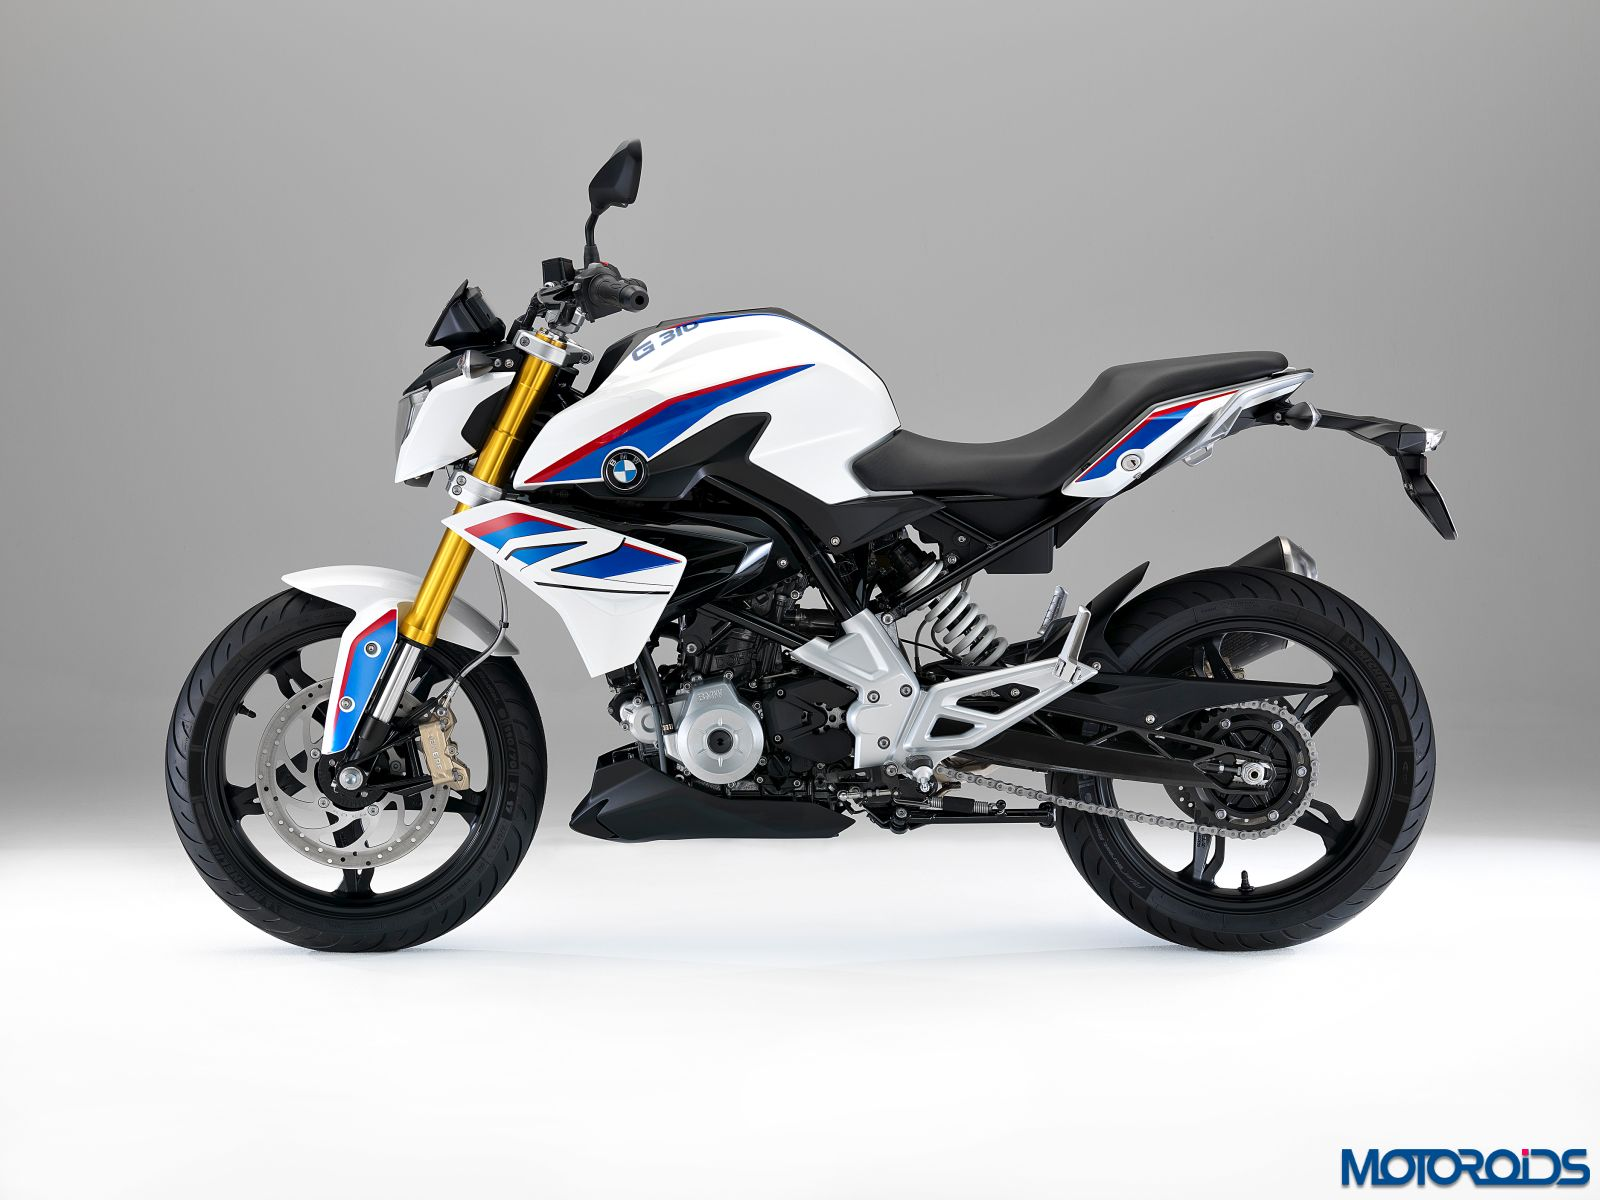 bmw g 310 r prices revealed likely to be priced lower than the ktm duke 390 motoroids. Black Bedroom Furniture Sets. Home Design Ideas